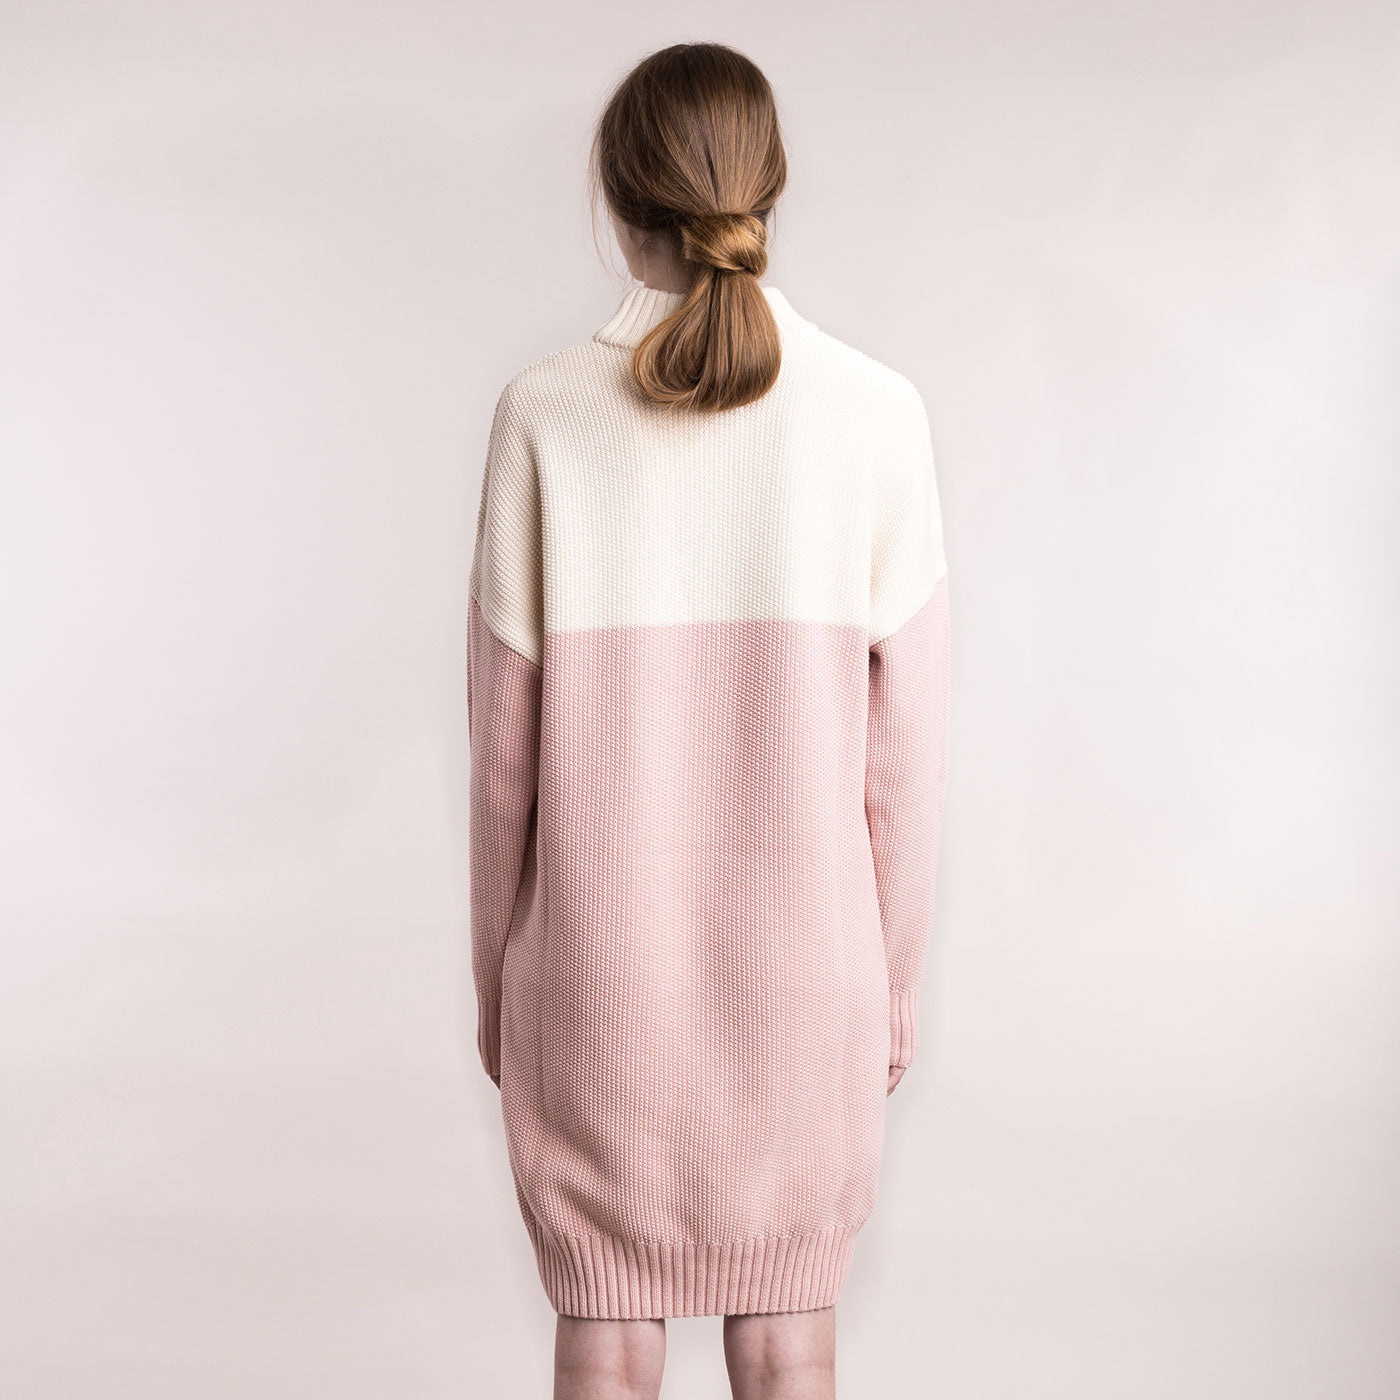 The model wears a cream and dusty pink, sustainable organic cotton, knitted double-colour dress, back view.